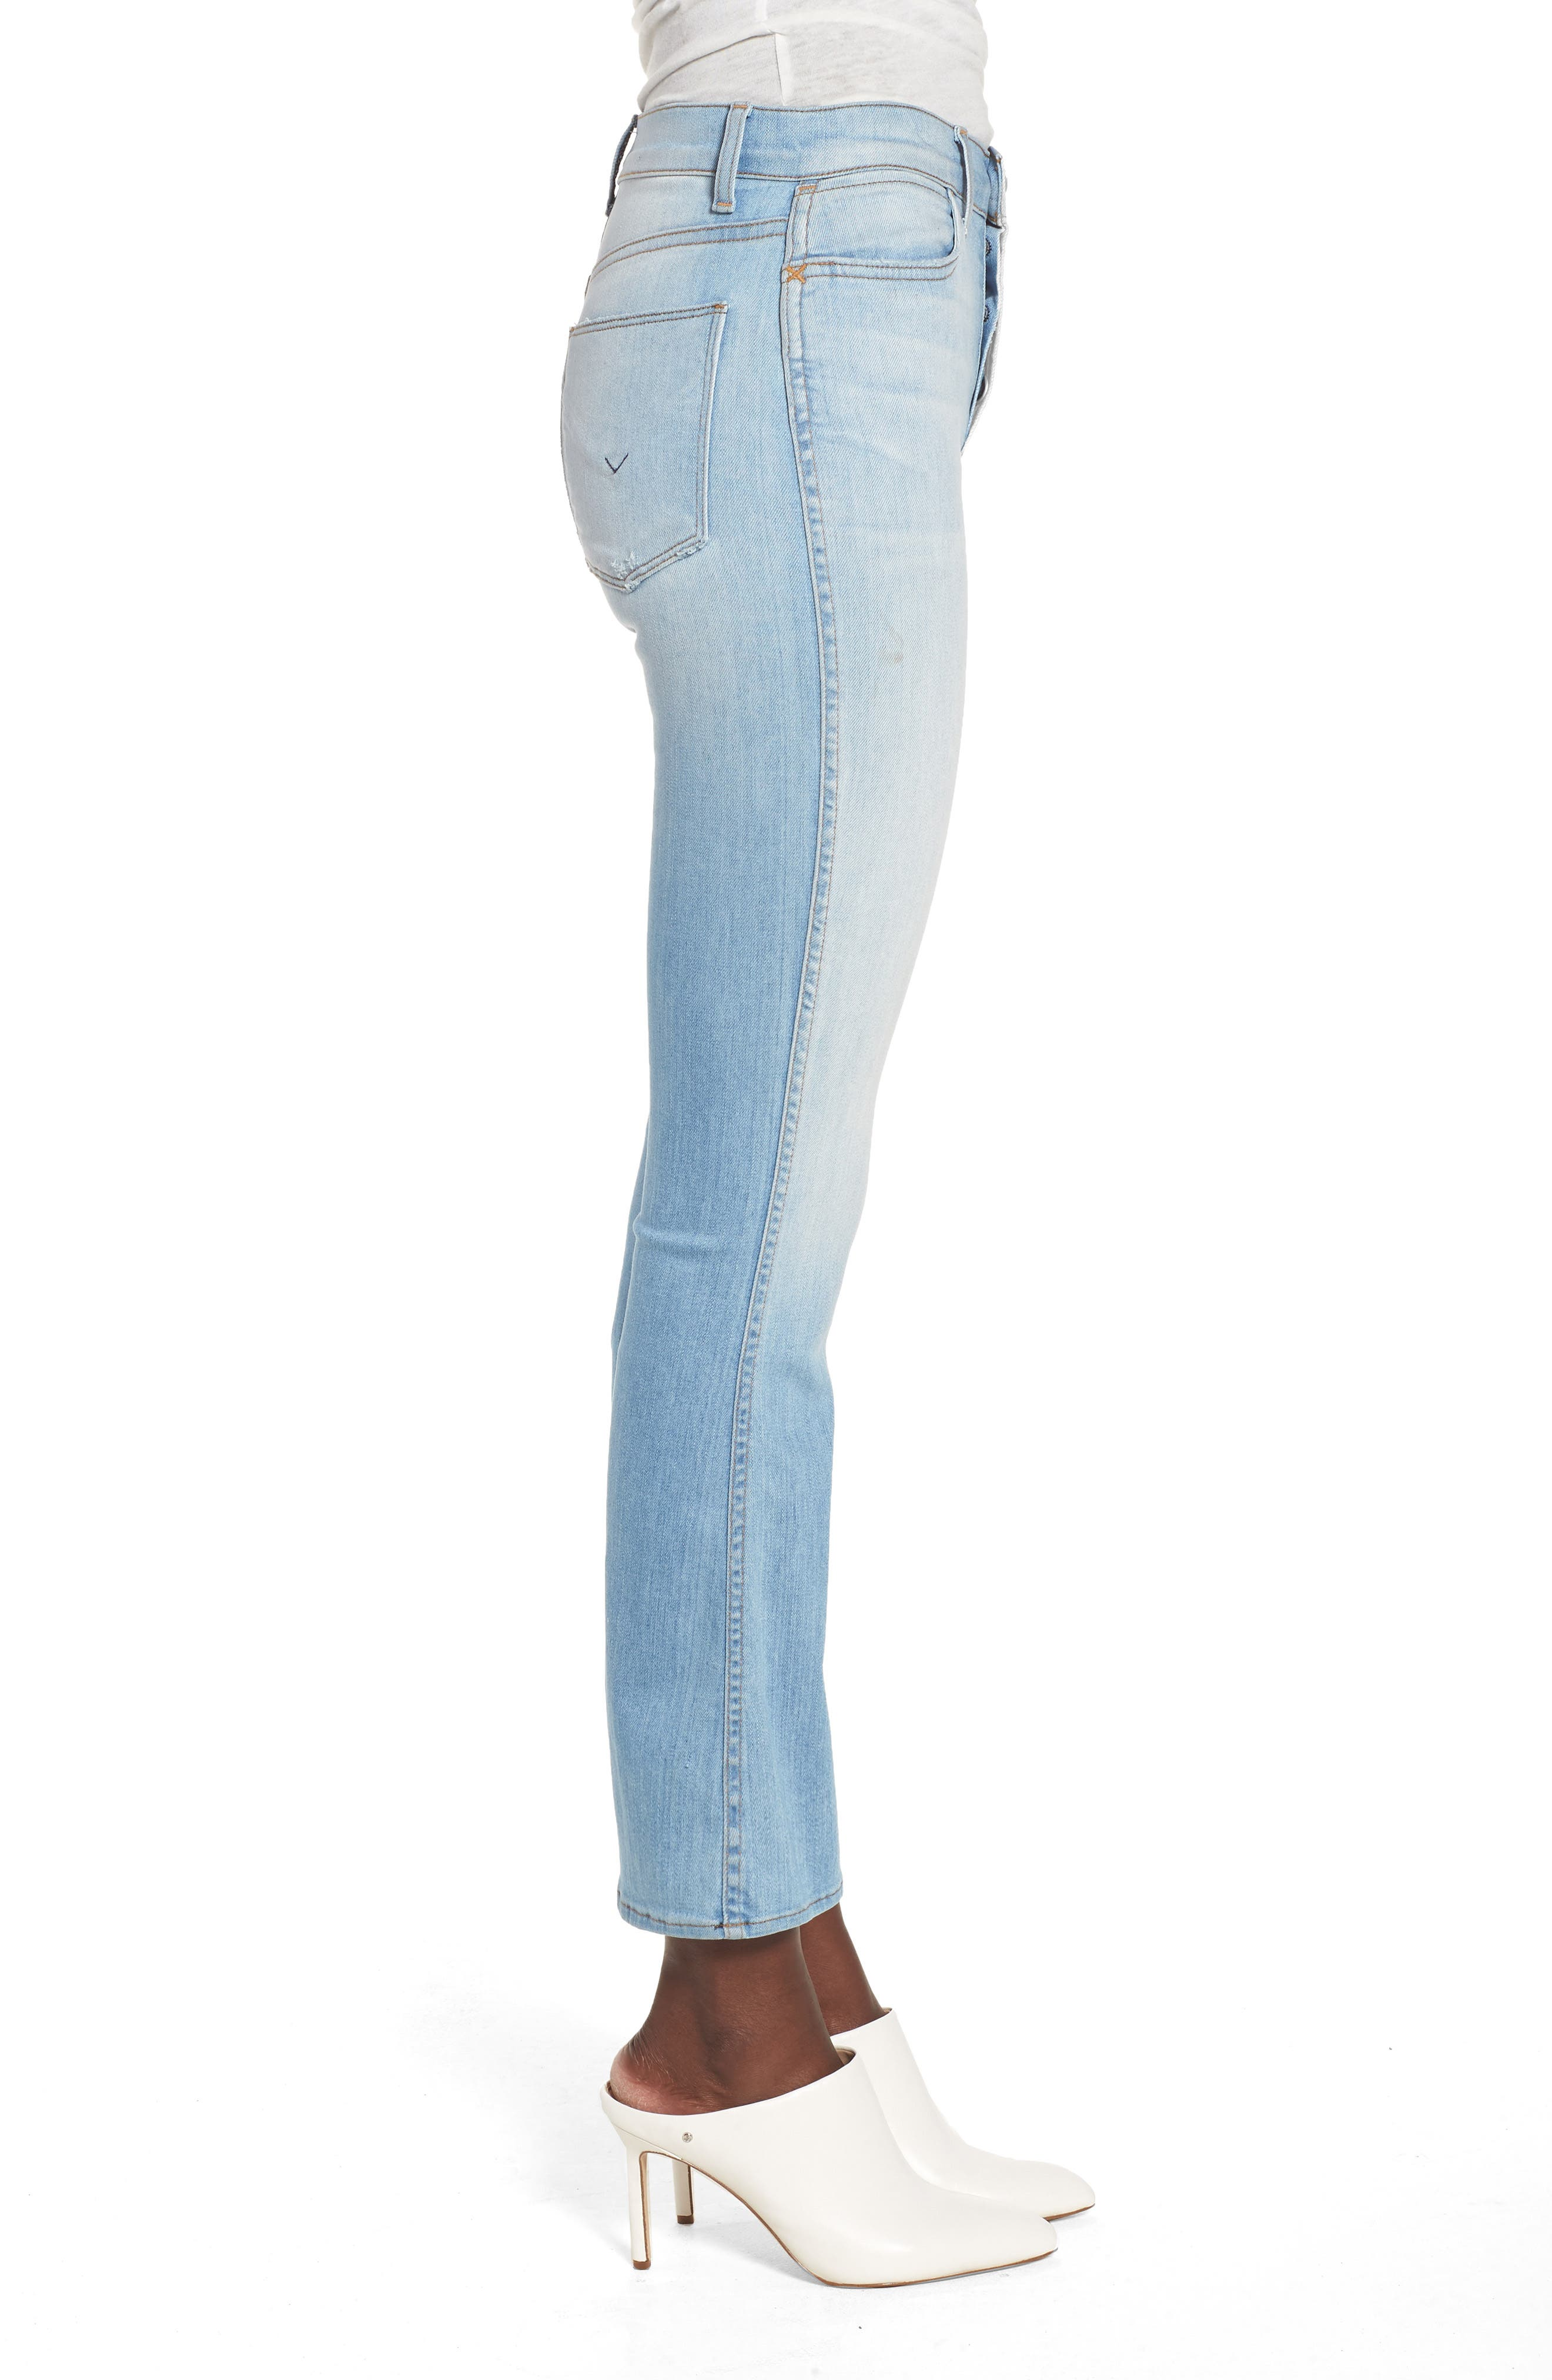 Holly High Waist Crop Flare Jeans,                             Alternate thumbnail 3, color,                             457